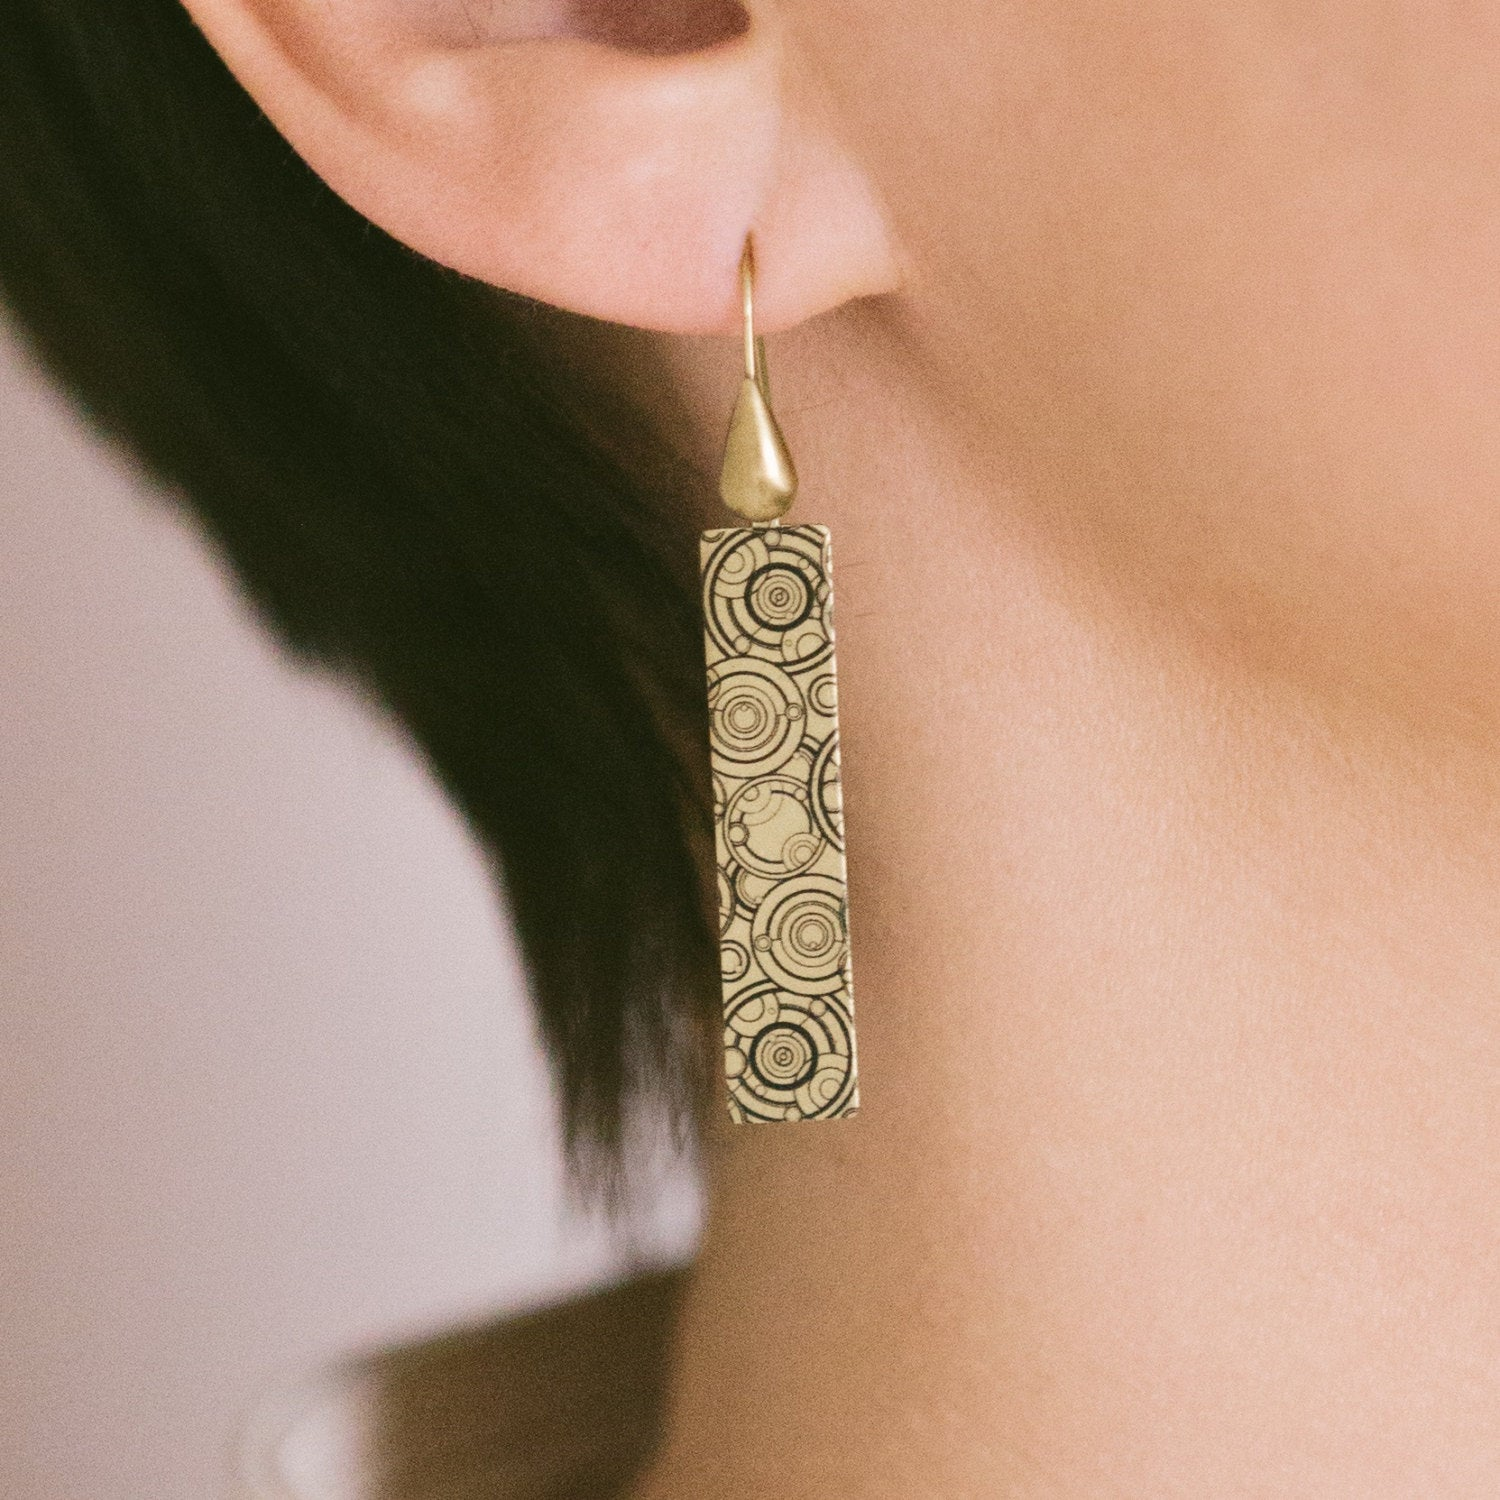 Gallifrey Dr Who Earrings